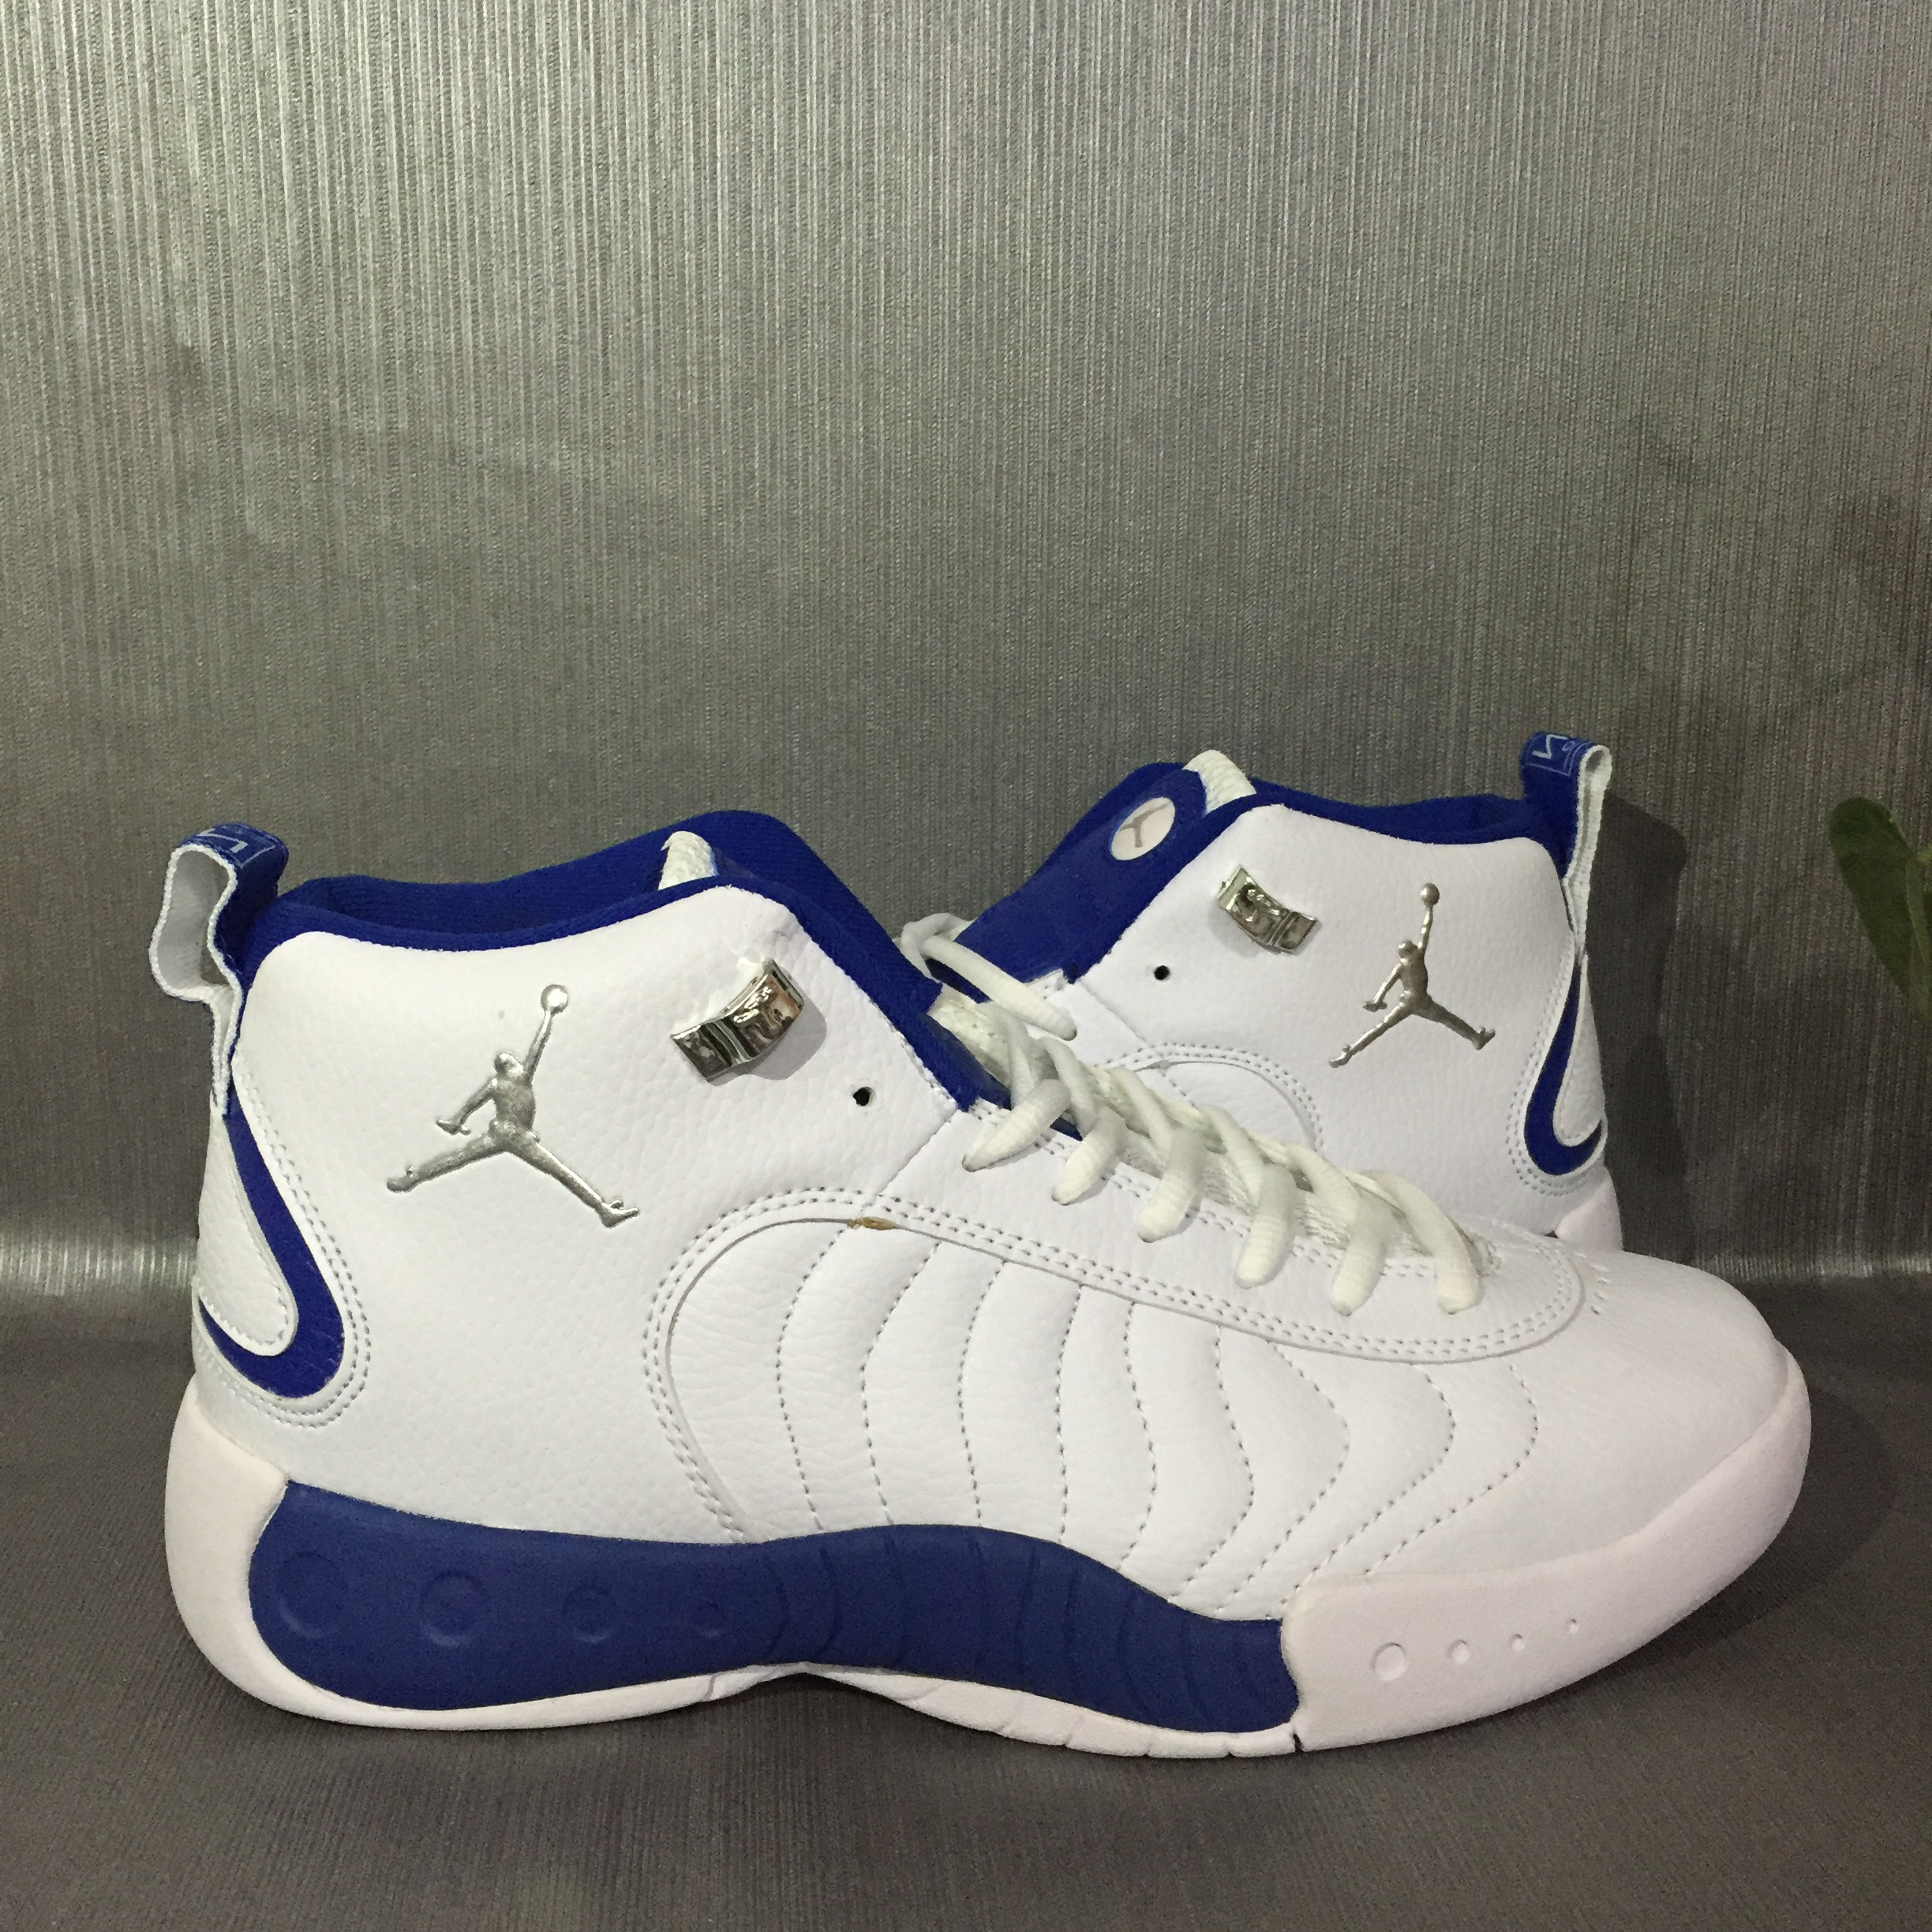 info for 91062 4bd78 2017 Jordan Jumpman Pro White Blue Shoes [REALAJS1231 ...